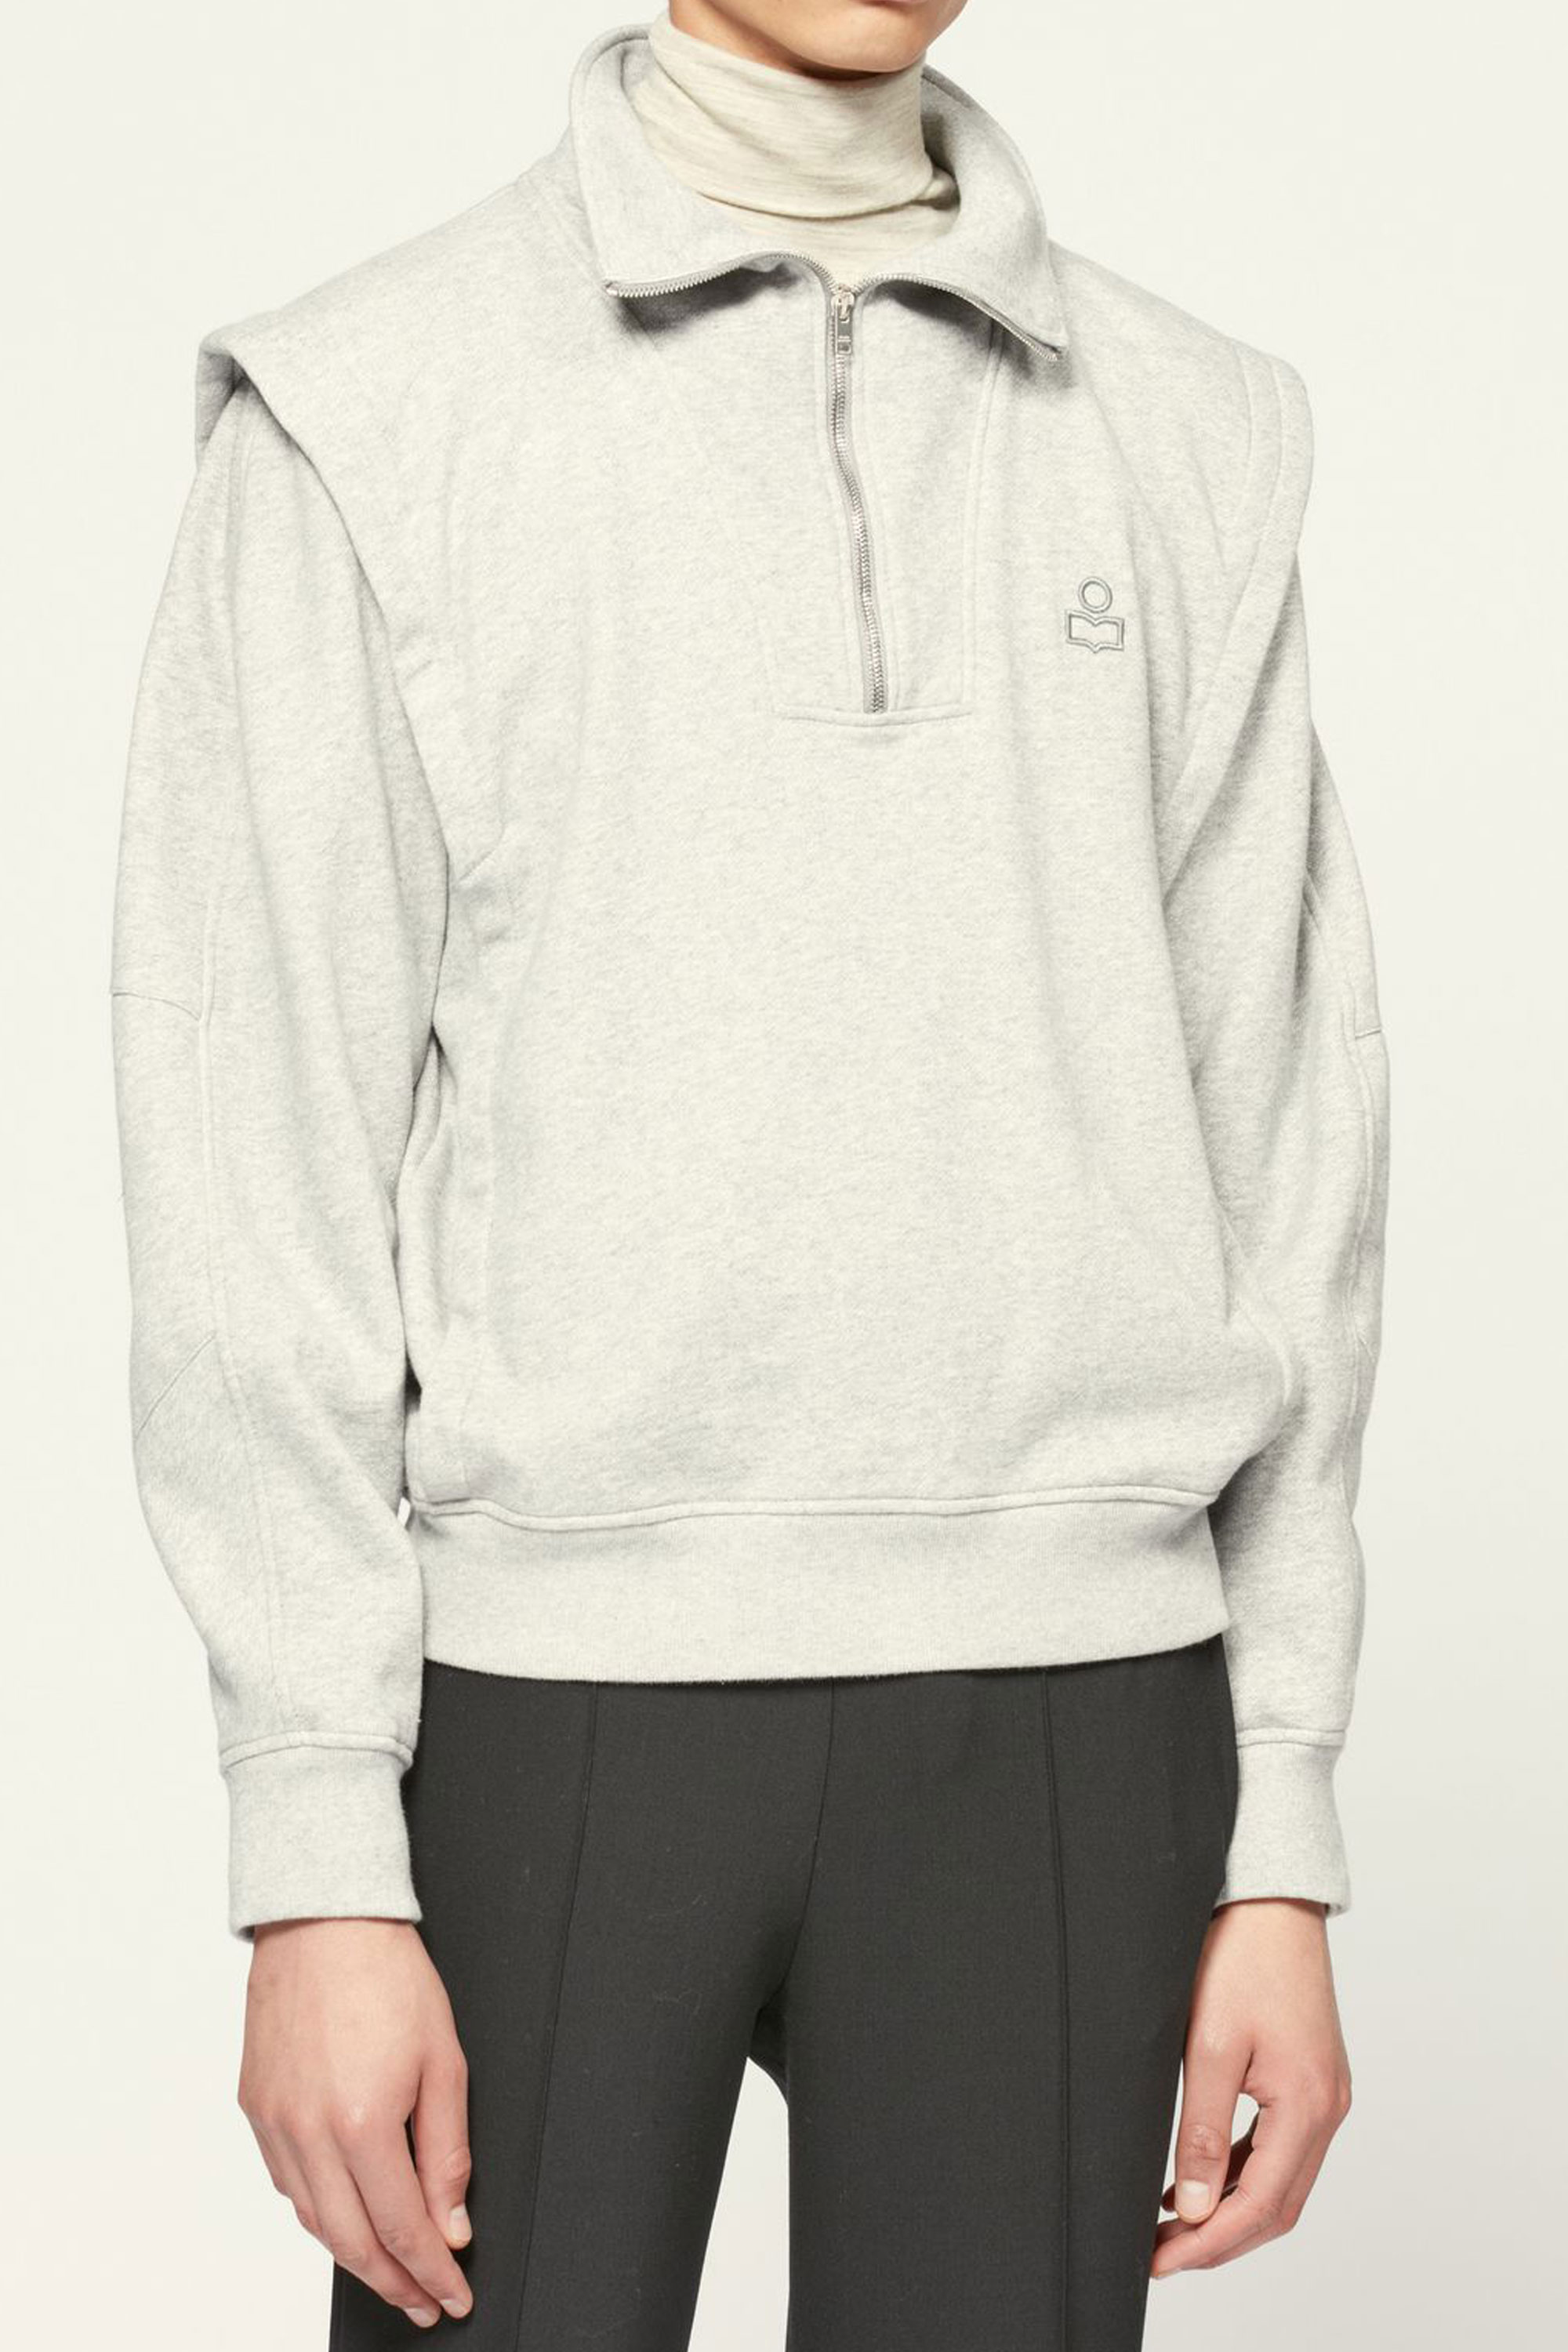 I.Marant MANAHIR Sweat ZIP-UP  2 corlor (Grey & Faded Black)  발매전 게시글 예약시 5%할인쿠폰 증정